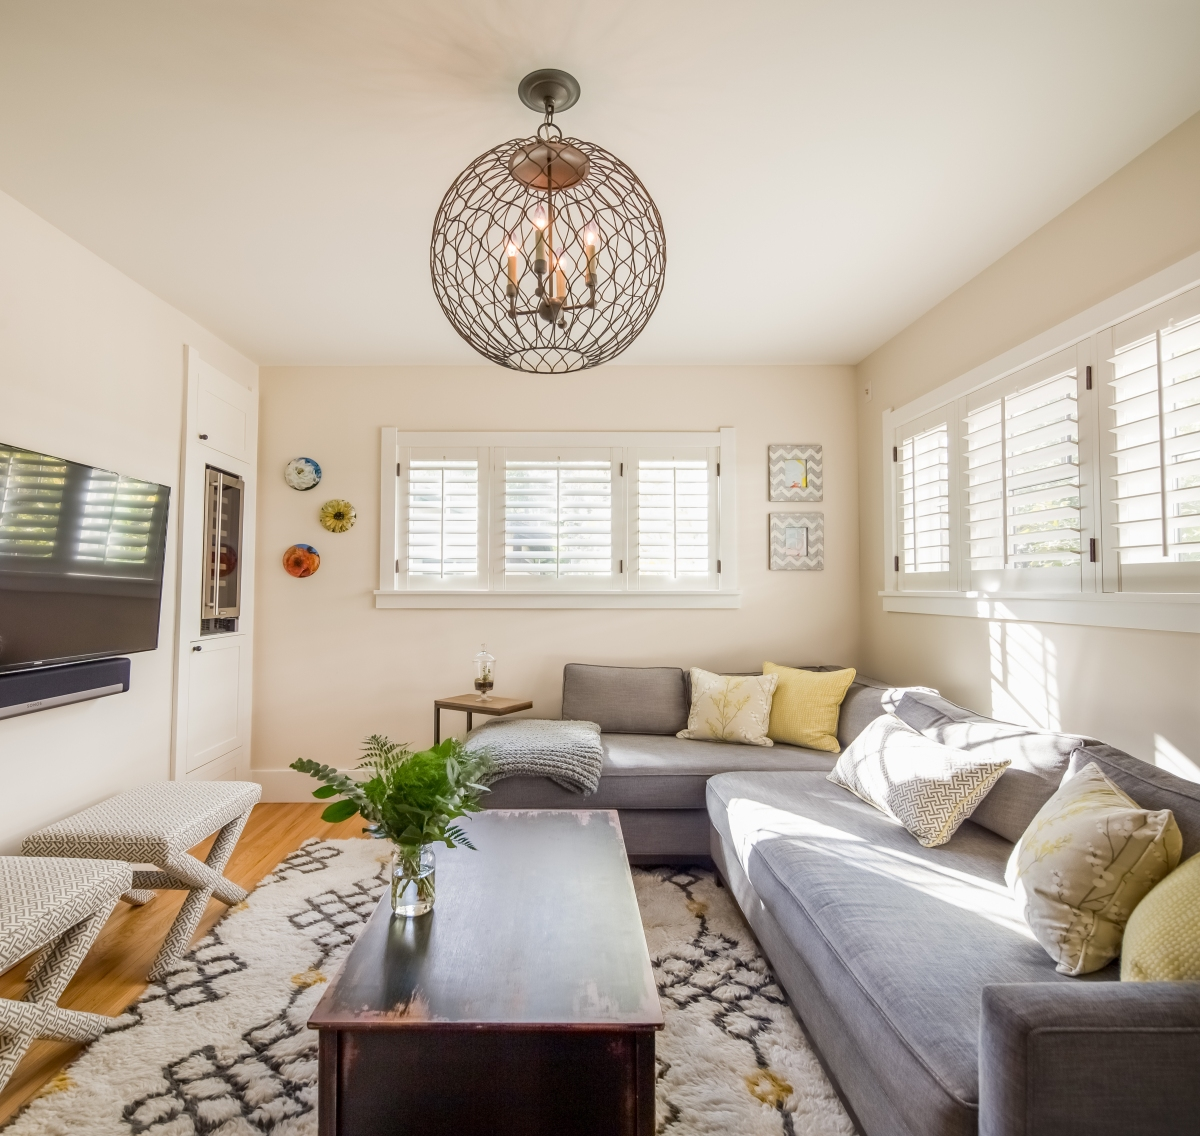 Best Interior Design House: Top Interior Design Trends To Help Sell Your Home